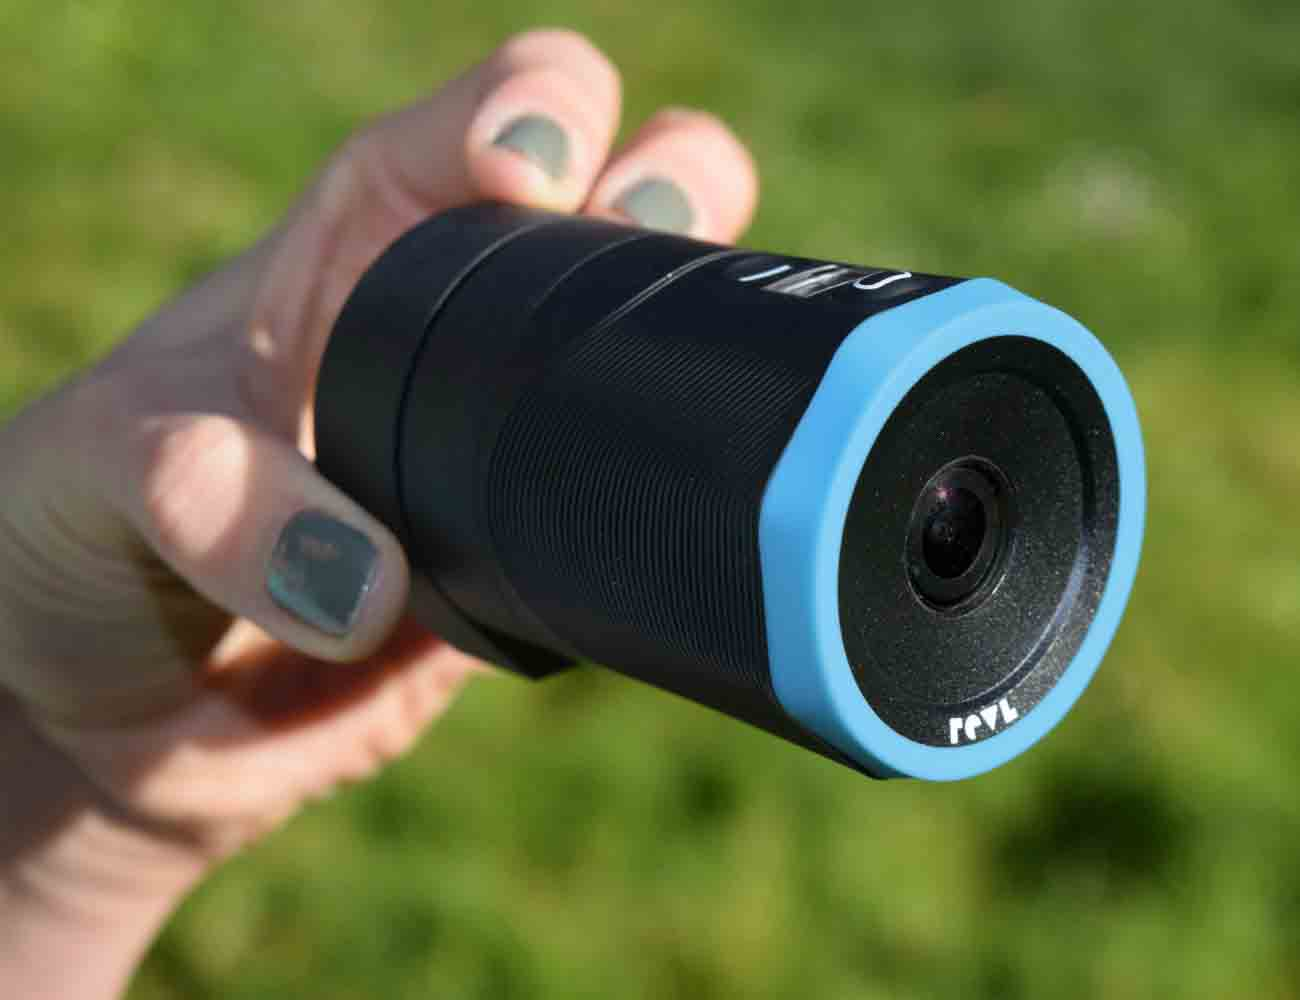 Revl – The World's Smartest Action Camera